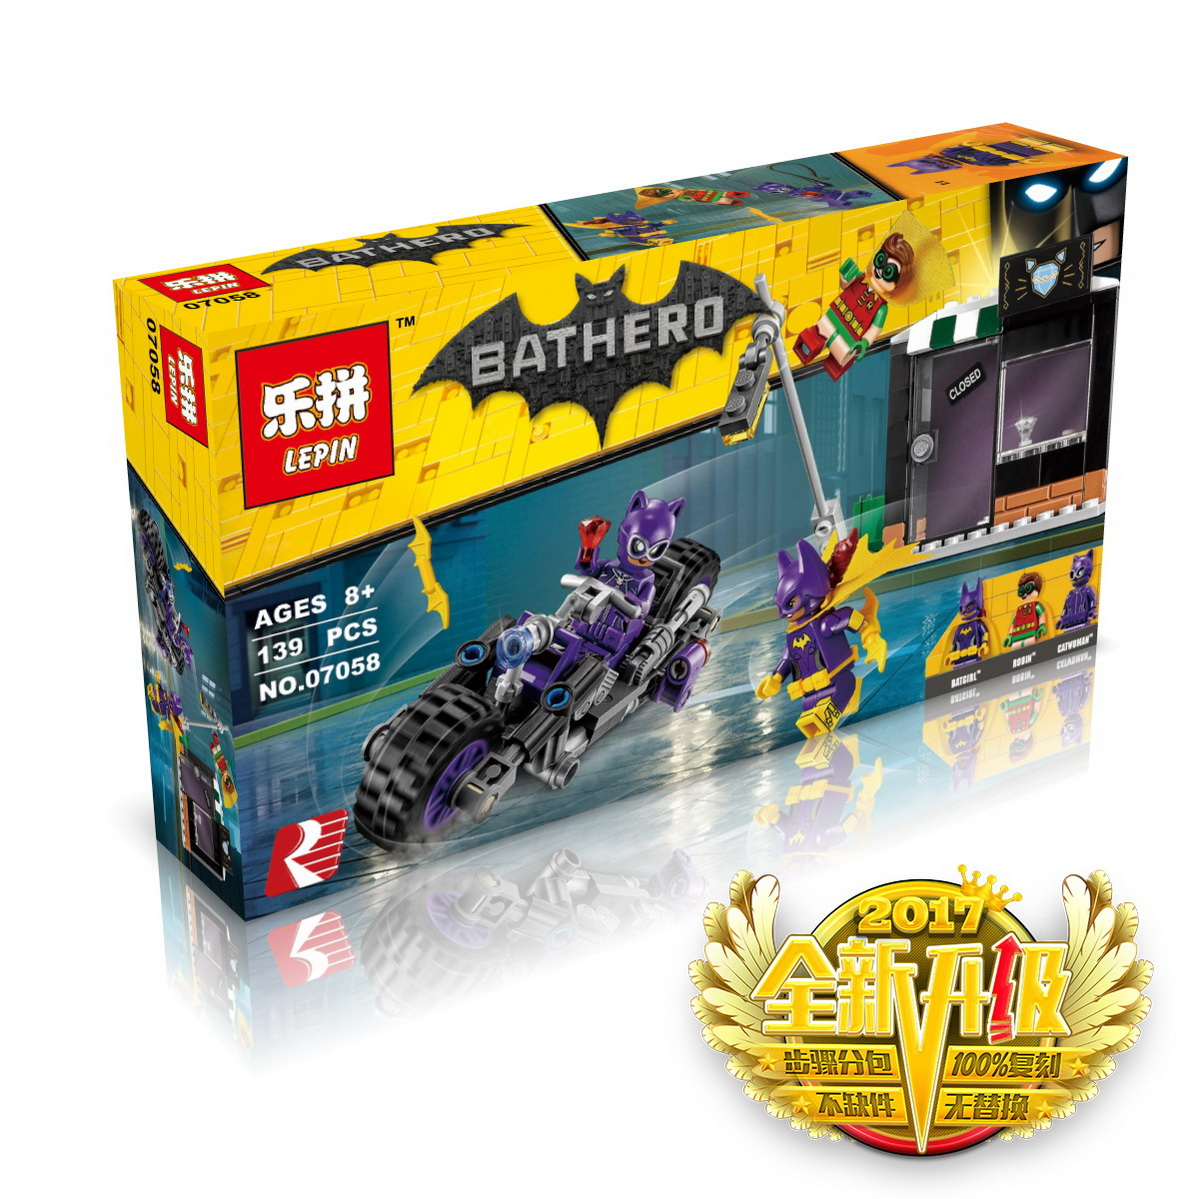 139+ PCS Building Bricks, LP 07058 Building Blocks Batman Movie 70902 Catwoman Catcycle Chase.